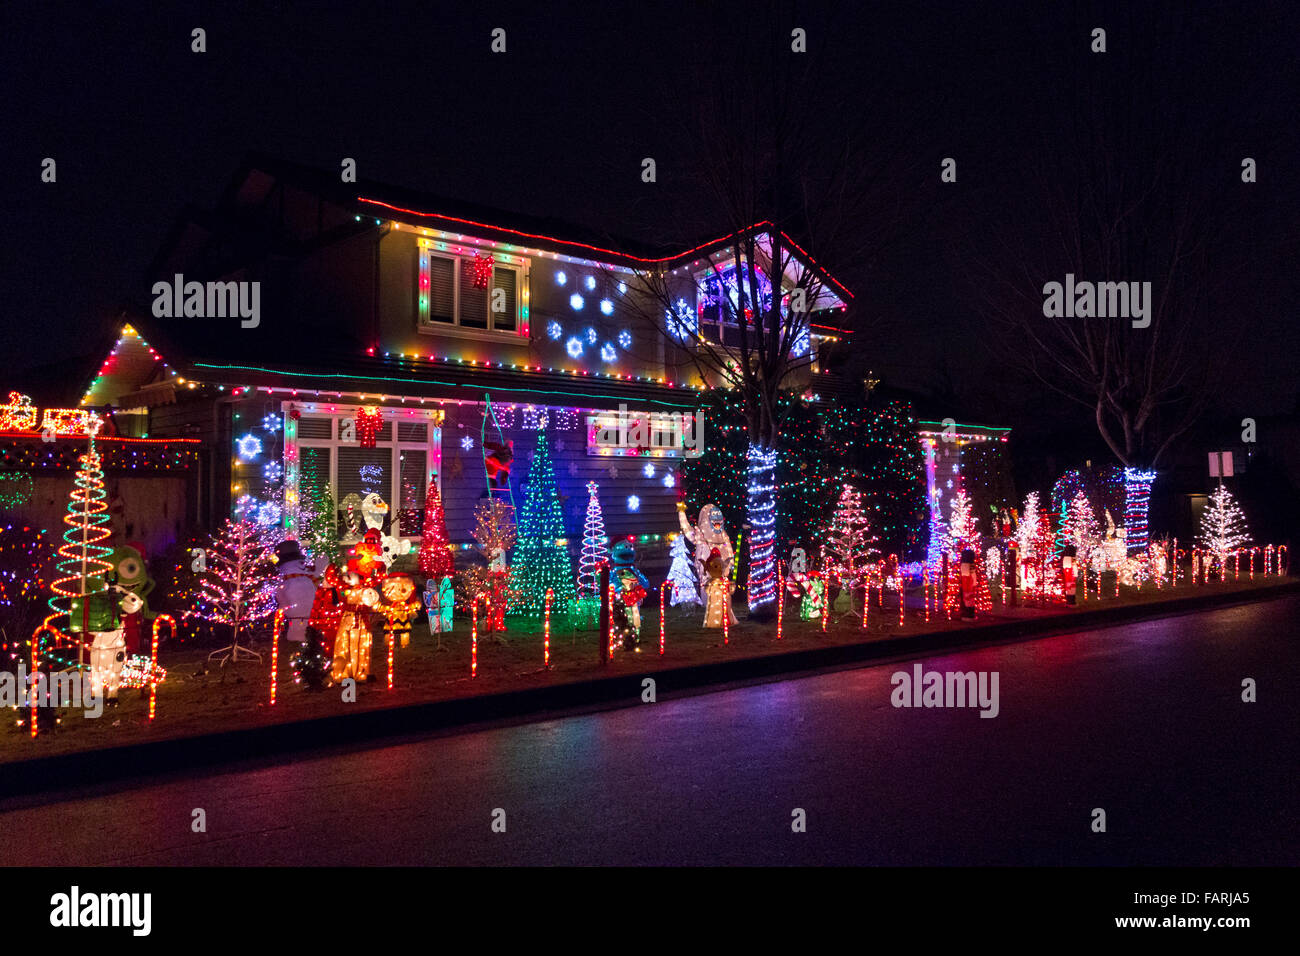 Christmas Lights Cartoon.Display Of Christmas Lights And Cartoon Characters At A Home